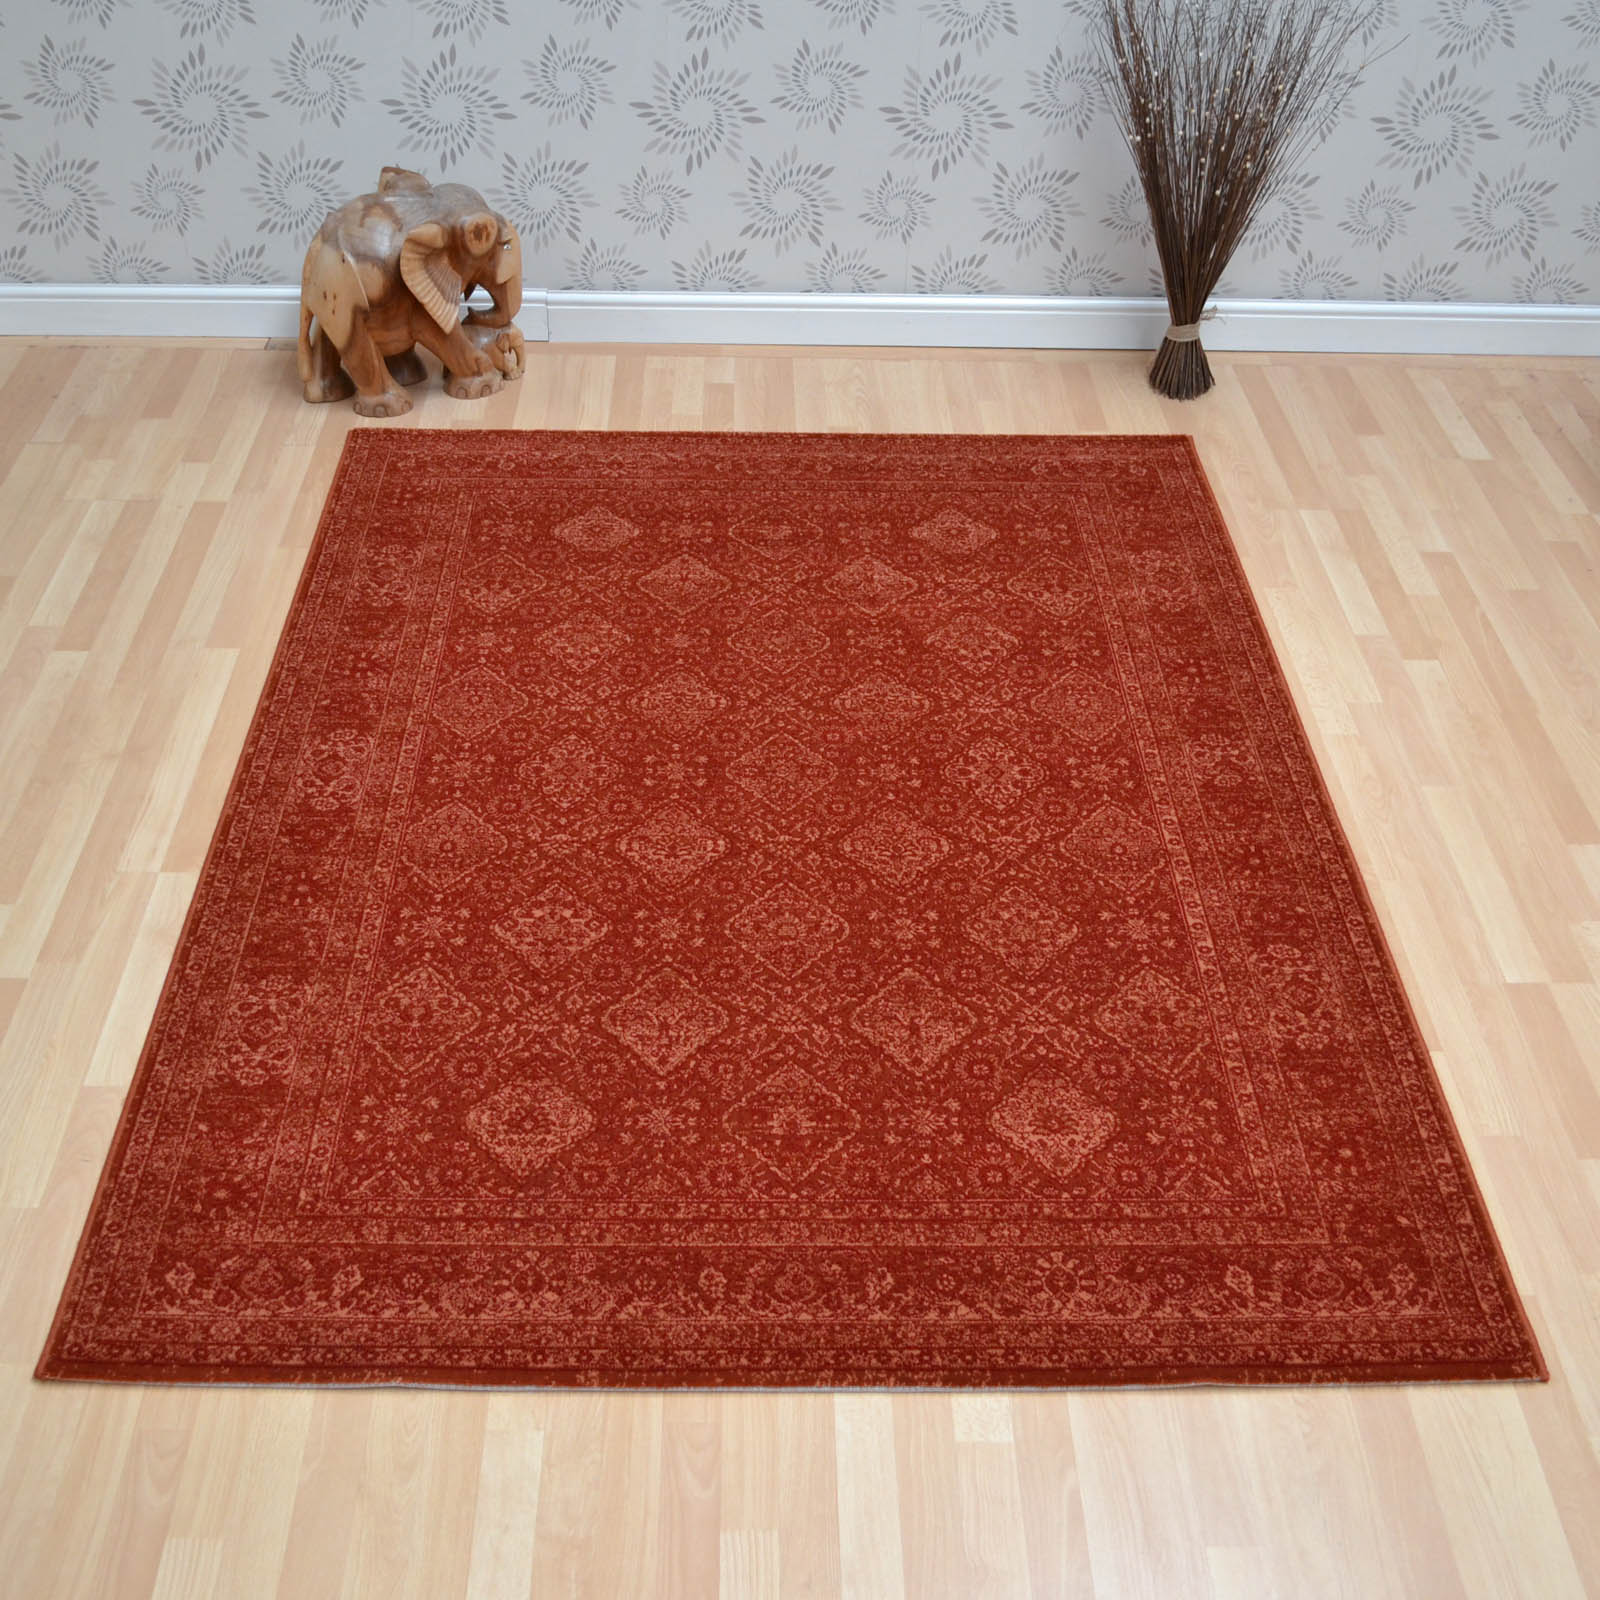 Lano Imperial Rugs 1951 672 in Terracotta